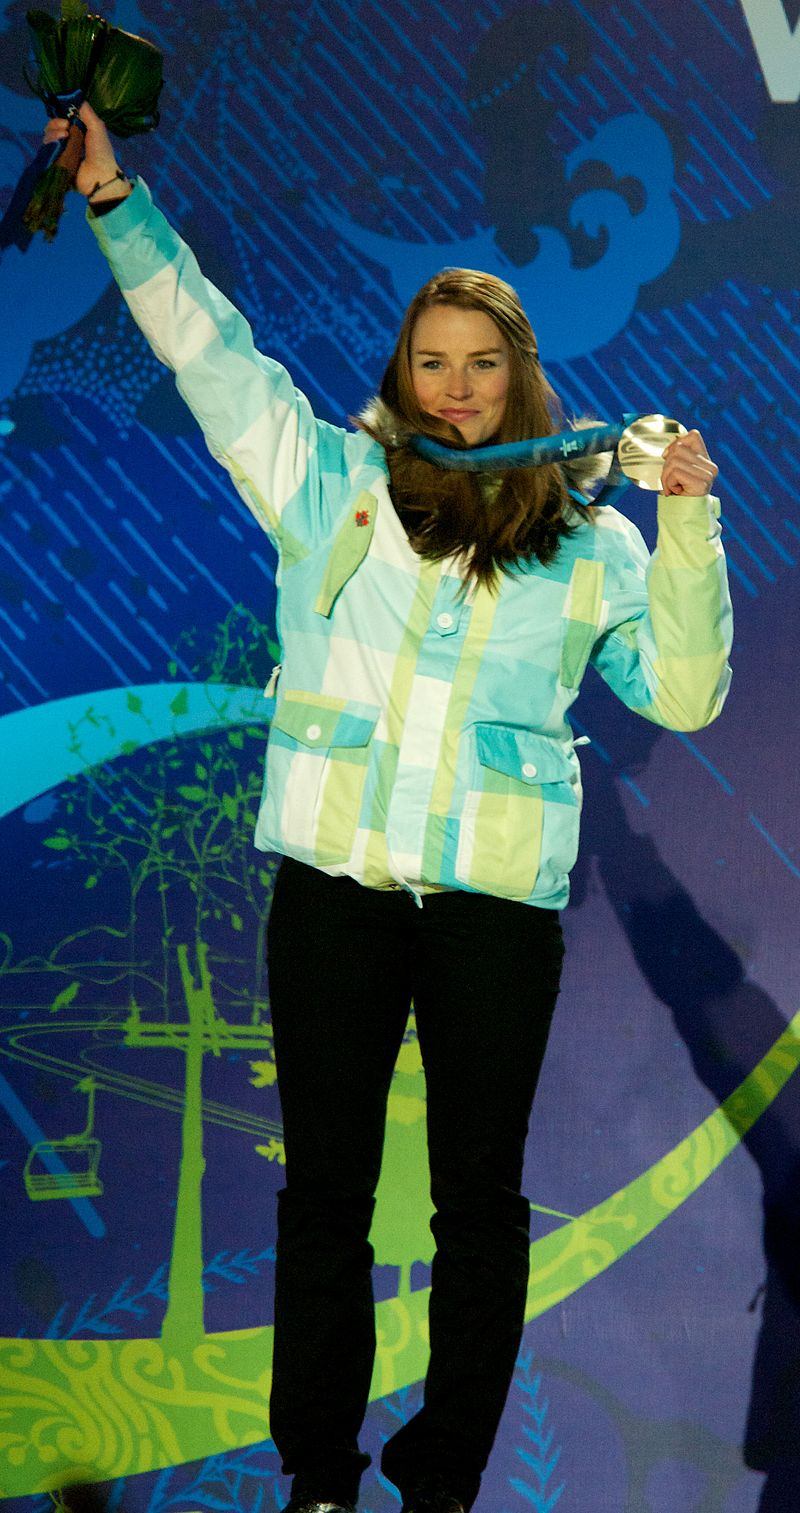 Tina Maze with Olympic silver medal 2010.jpg